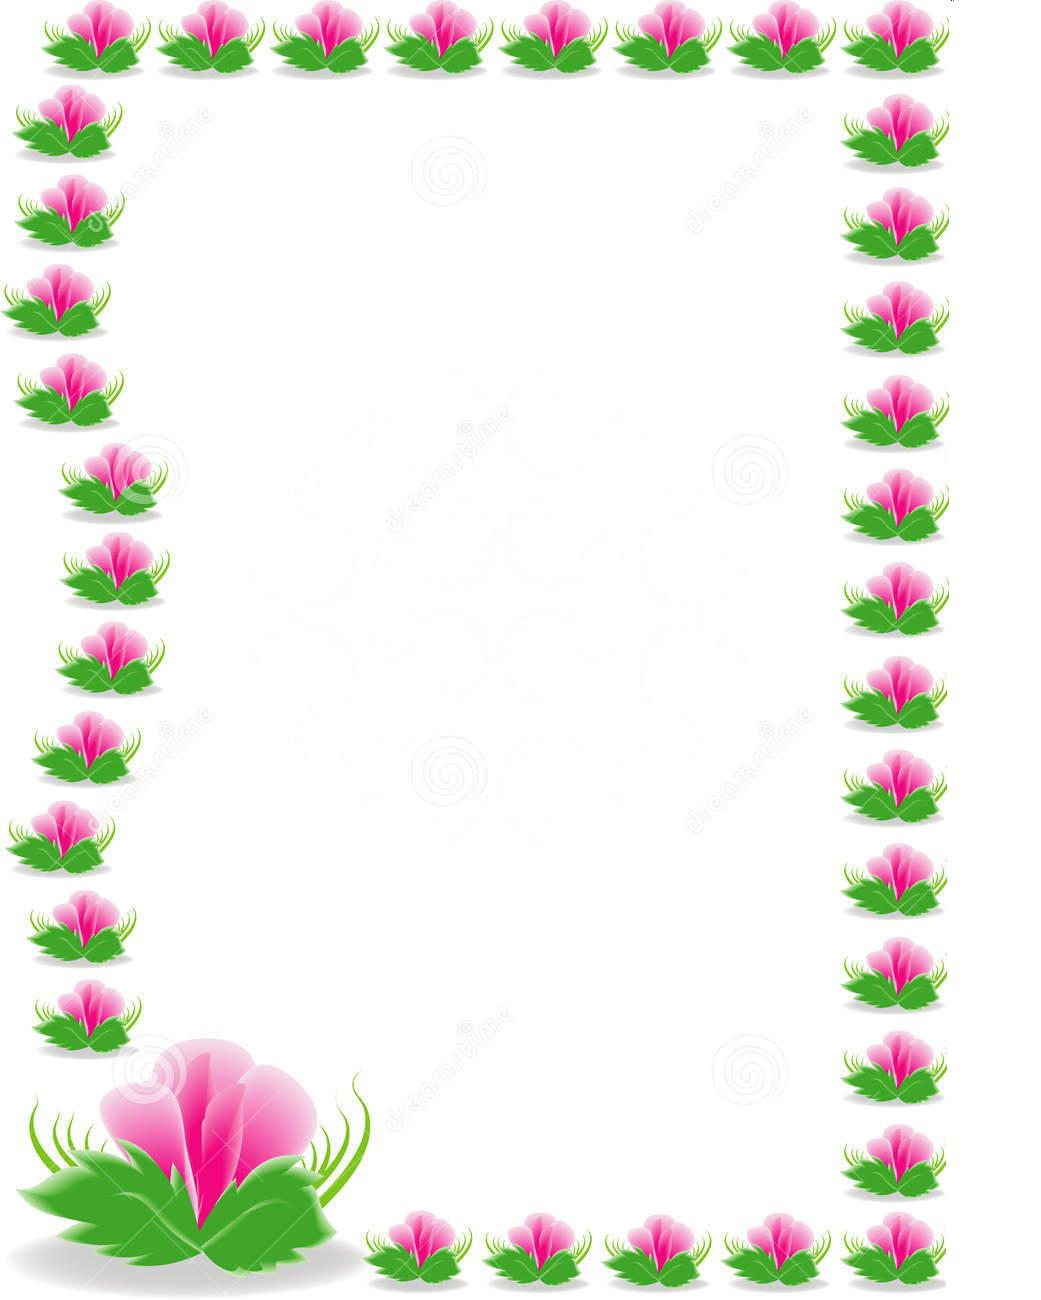 Pink and Green Flower Border